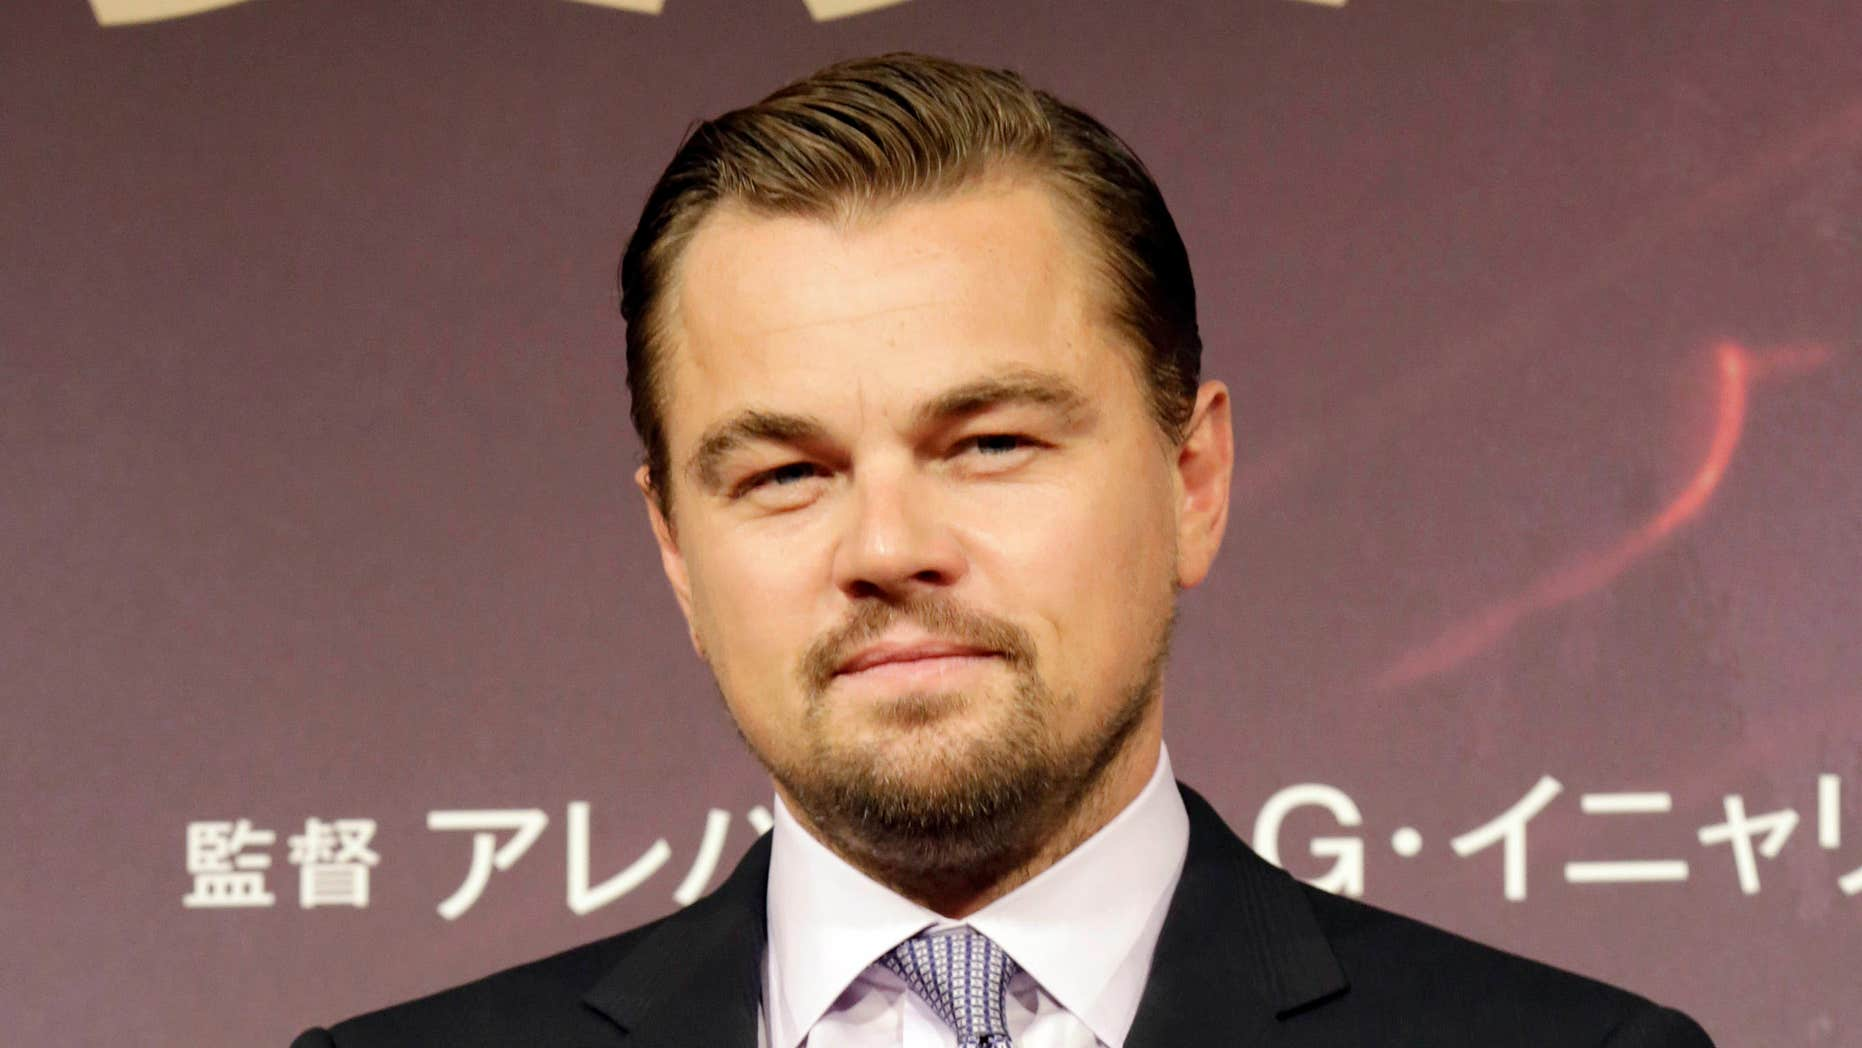 """FILE - In this March 23, 2016 file photo, actor Leonardo DiCaprio poses during a photo session of the movie """"The Revenant"""" in Tokyo."""